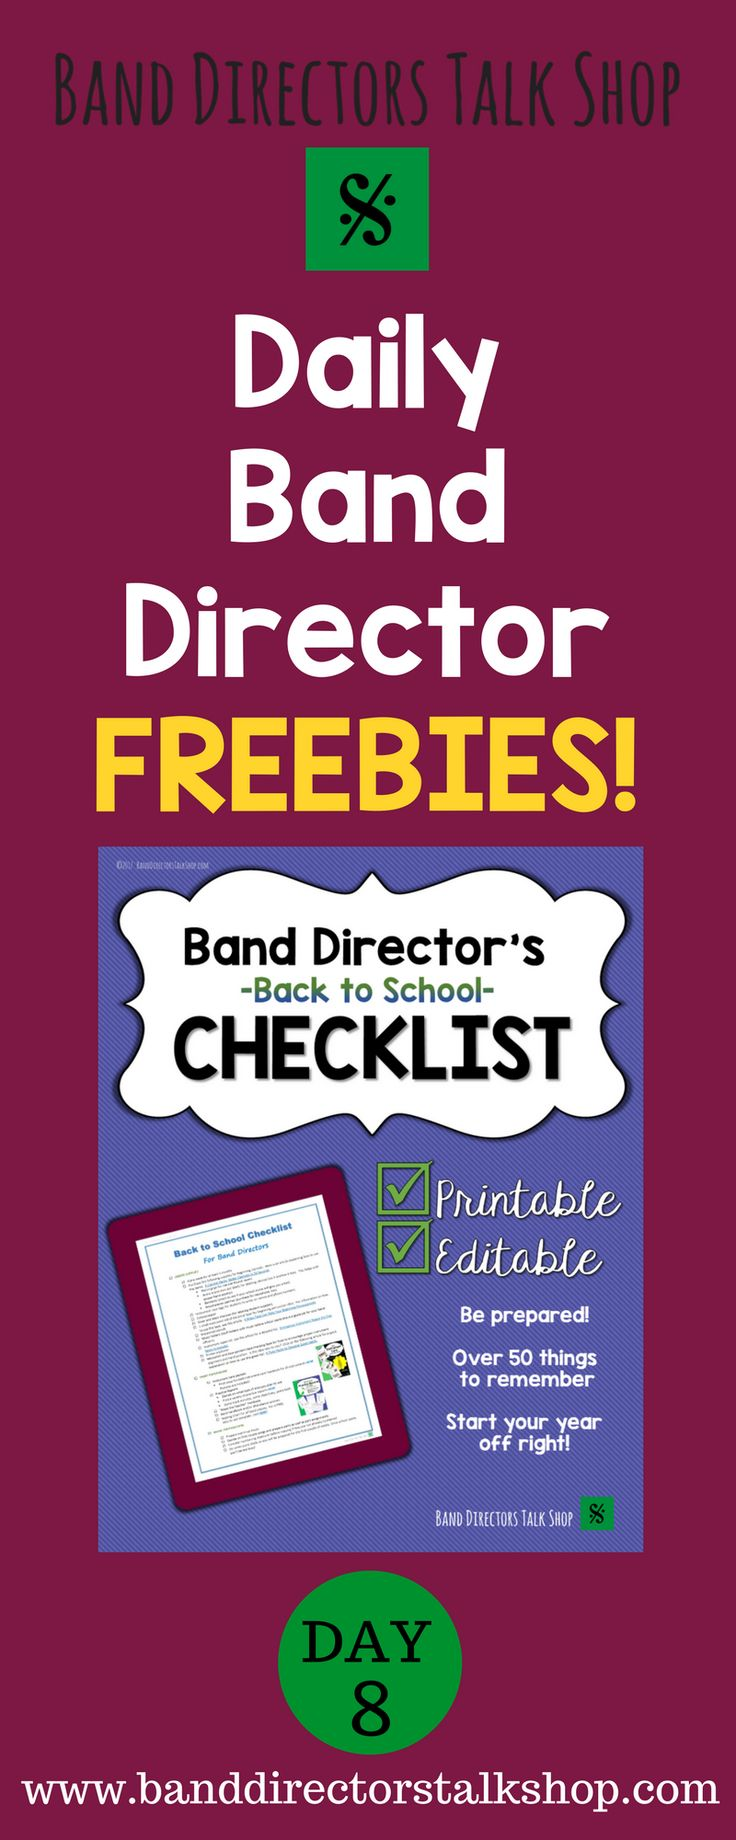 Daily Freebies for beginning band or elementary music! Visit Band Directors Talk Shop on Teachers Pay Teachers for band lesson plans, band games, band activities, band bulletin board sets, rhythm games, note name games, music word walls, practice records, rehearsal techniques, woodwind, brass and percussion instrument care, band teaching strategies, motivational quotes and more!